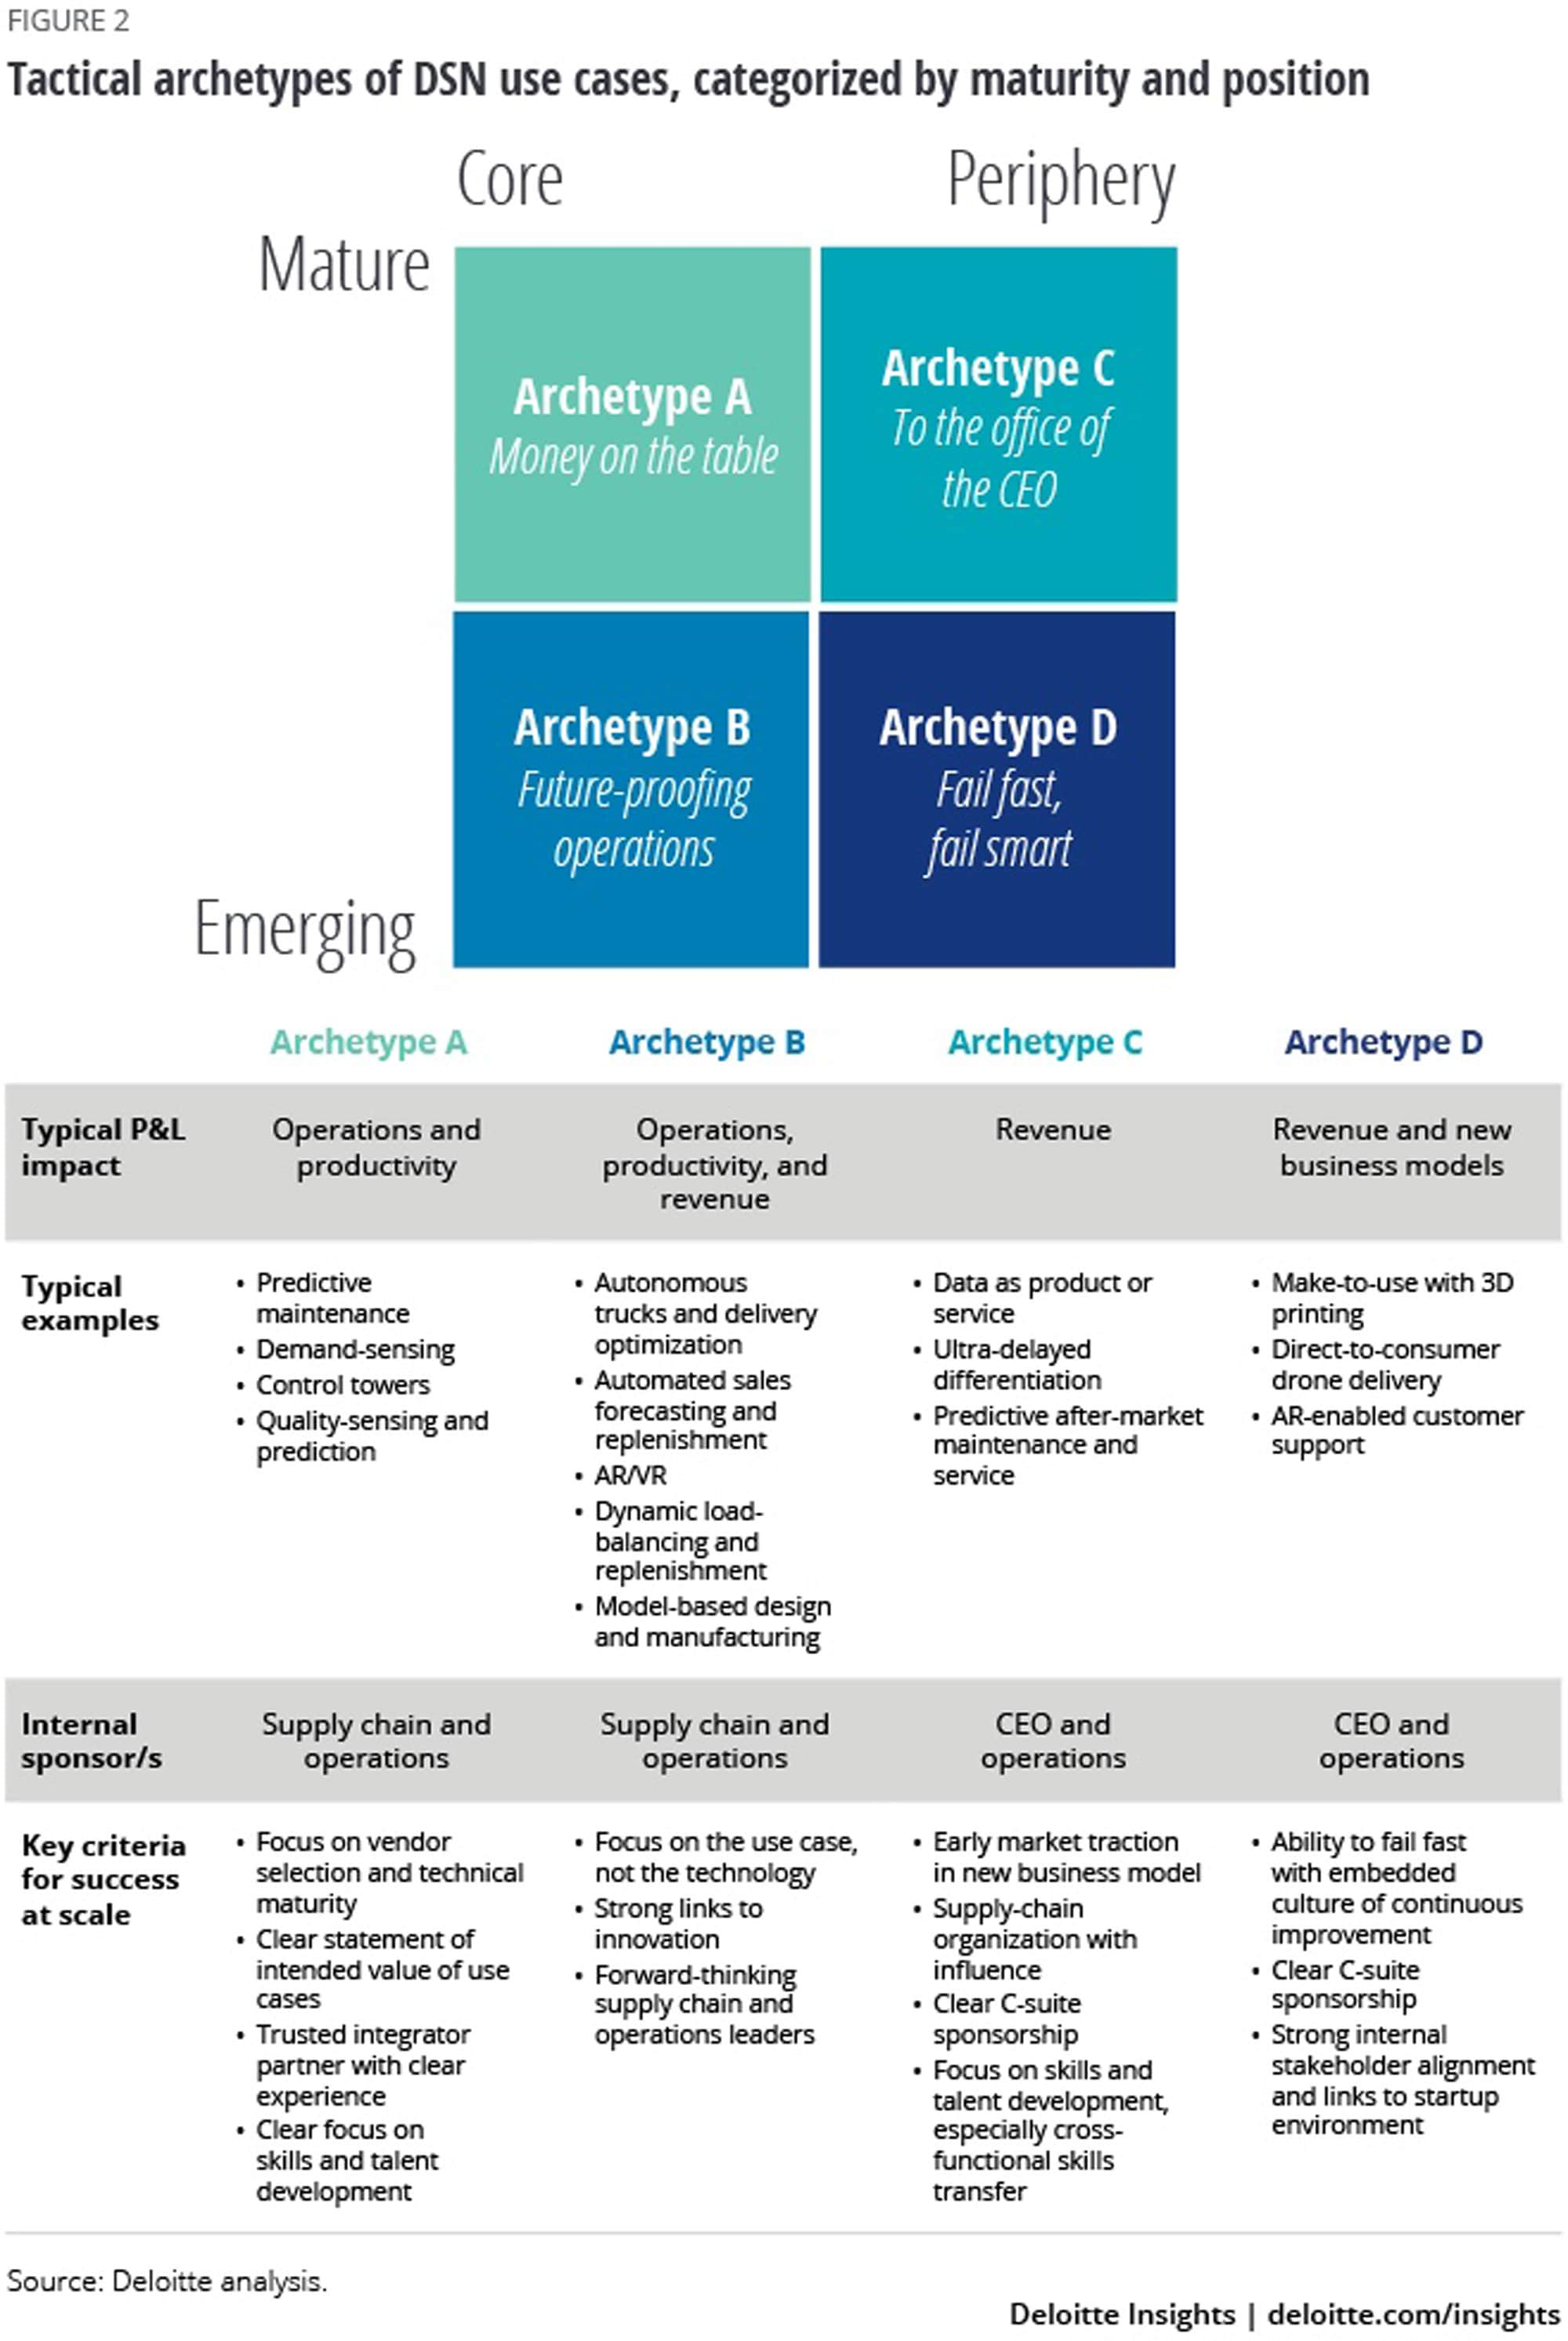 Tactical archetypes of DSN use cases, categorized by maturity and position